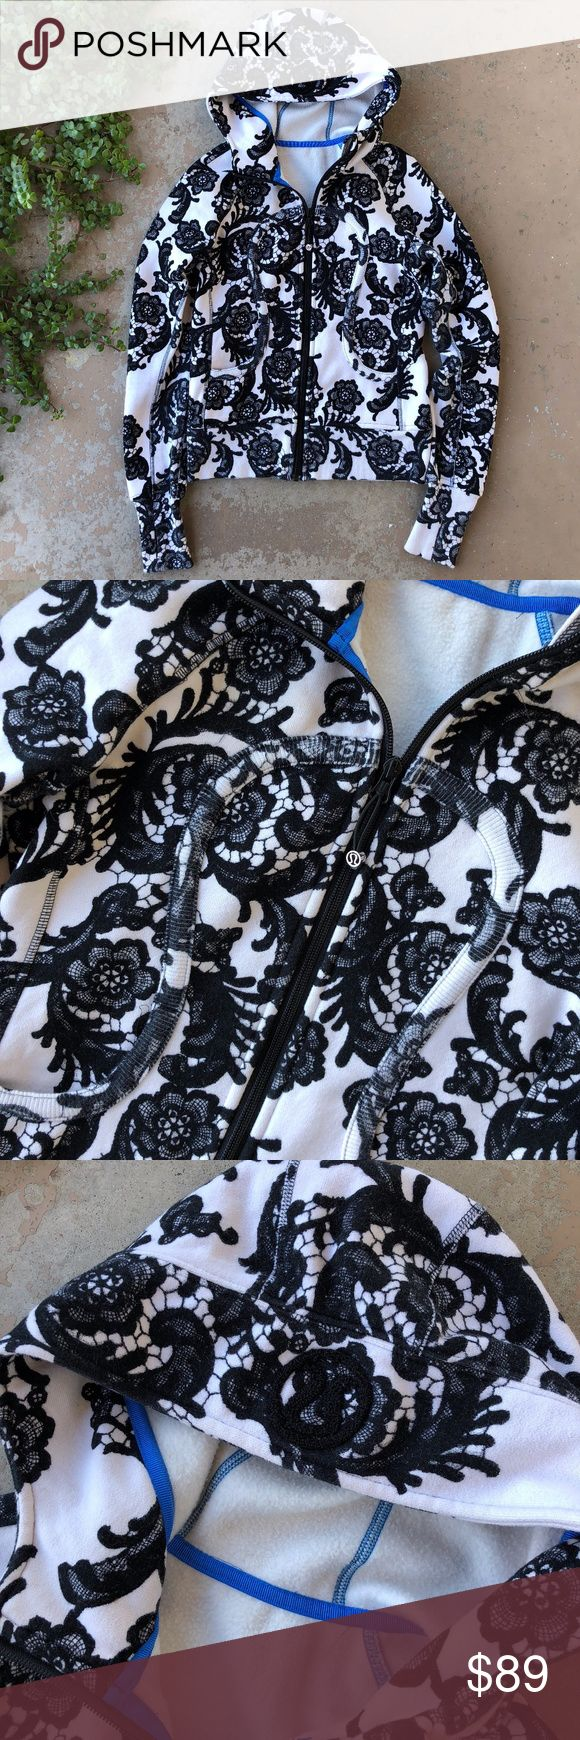 """Lululemon Laceoflage Floral Scuba Hoodie Jacket Black and white floral """"Laceoflage"""" Scuba zip up hoodie by Lululemon. Features front pockets, thumb holes, and an embroidered logo on the hood. The rip tag is removed, but it is a size 4 according to the size dot in the pocket. In great condition with no flaws. lululemon athletica Tops Sweatshirts & Hoodies"""